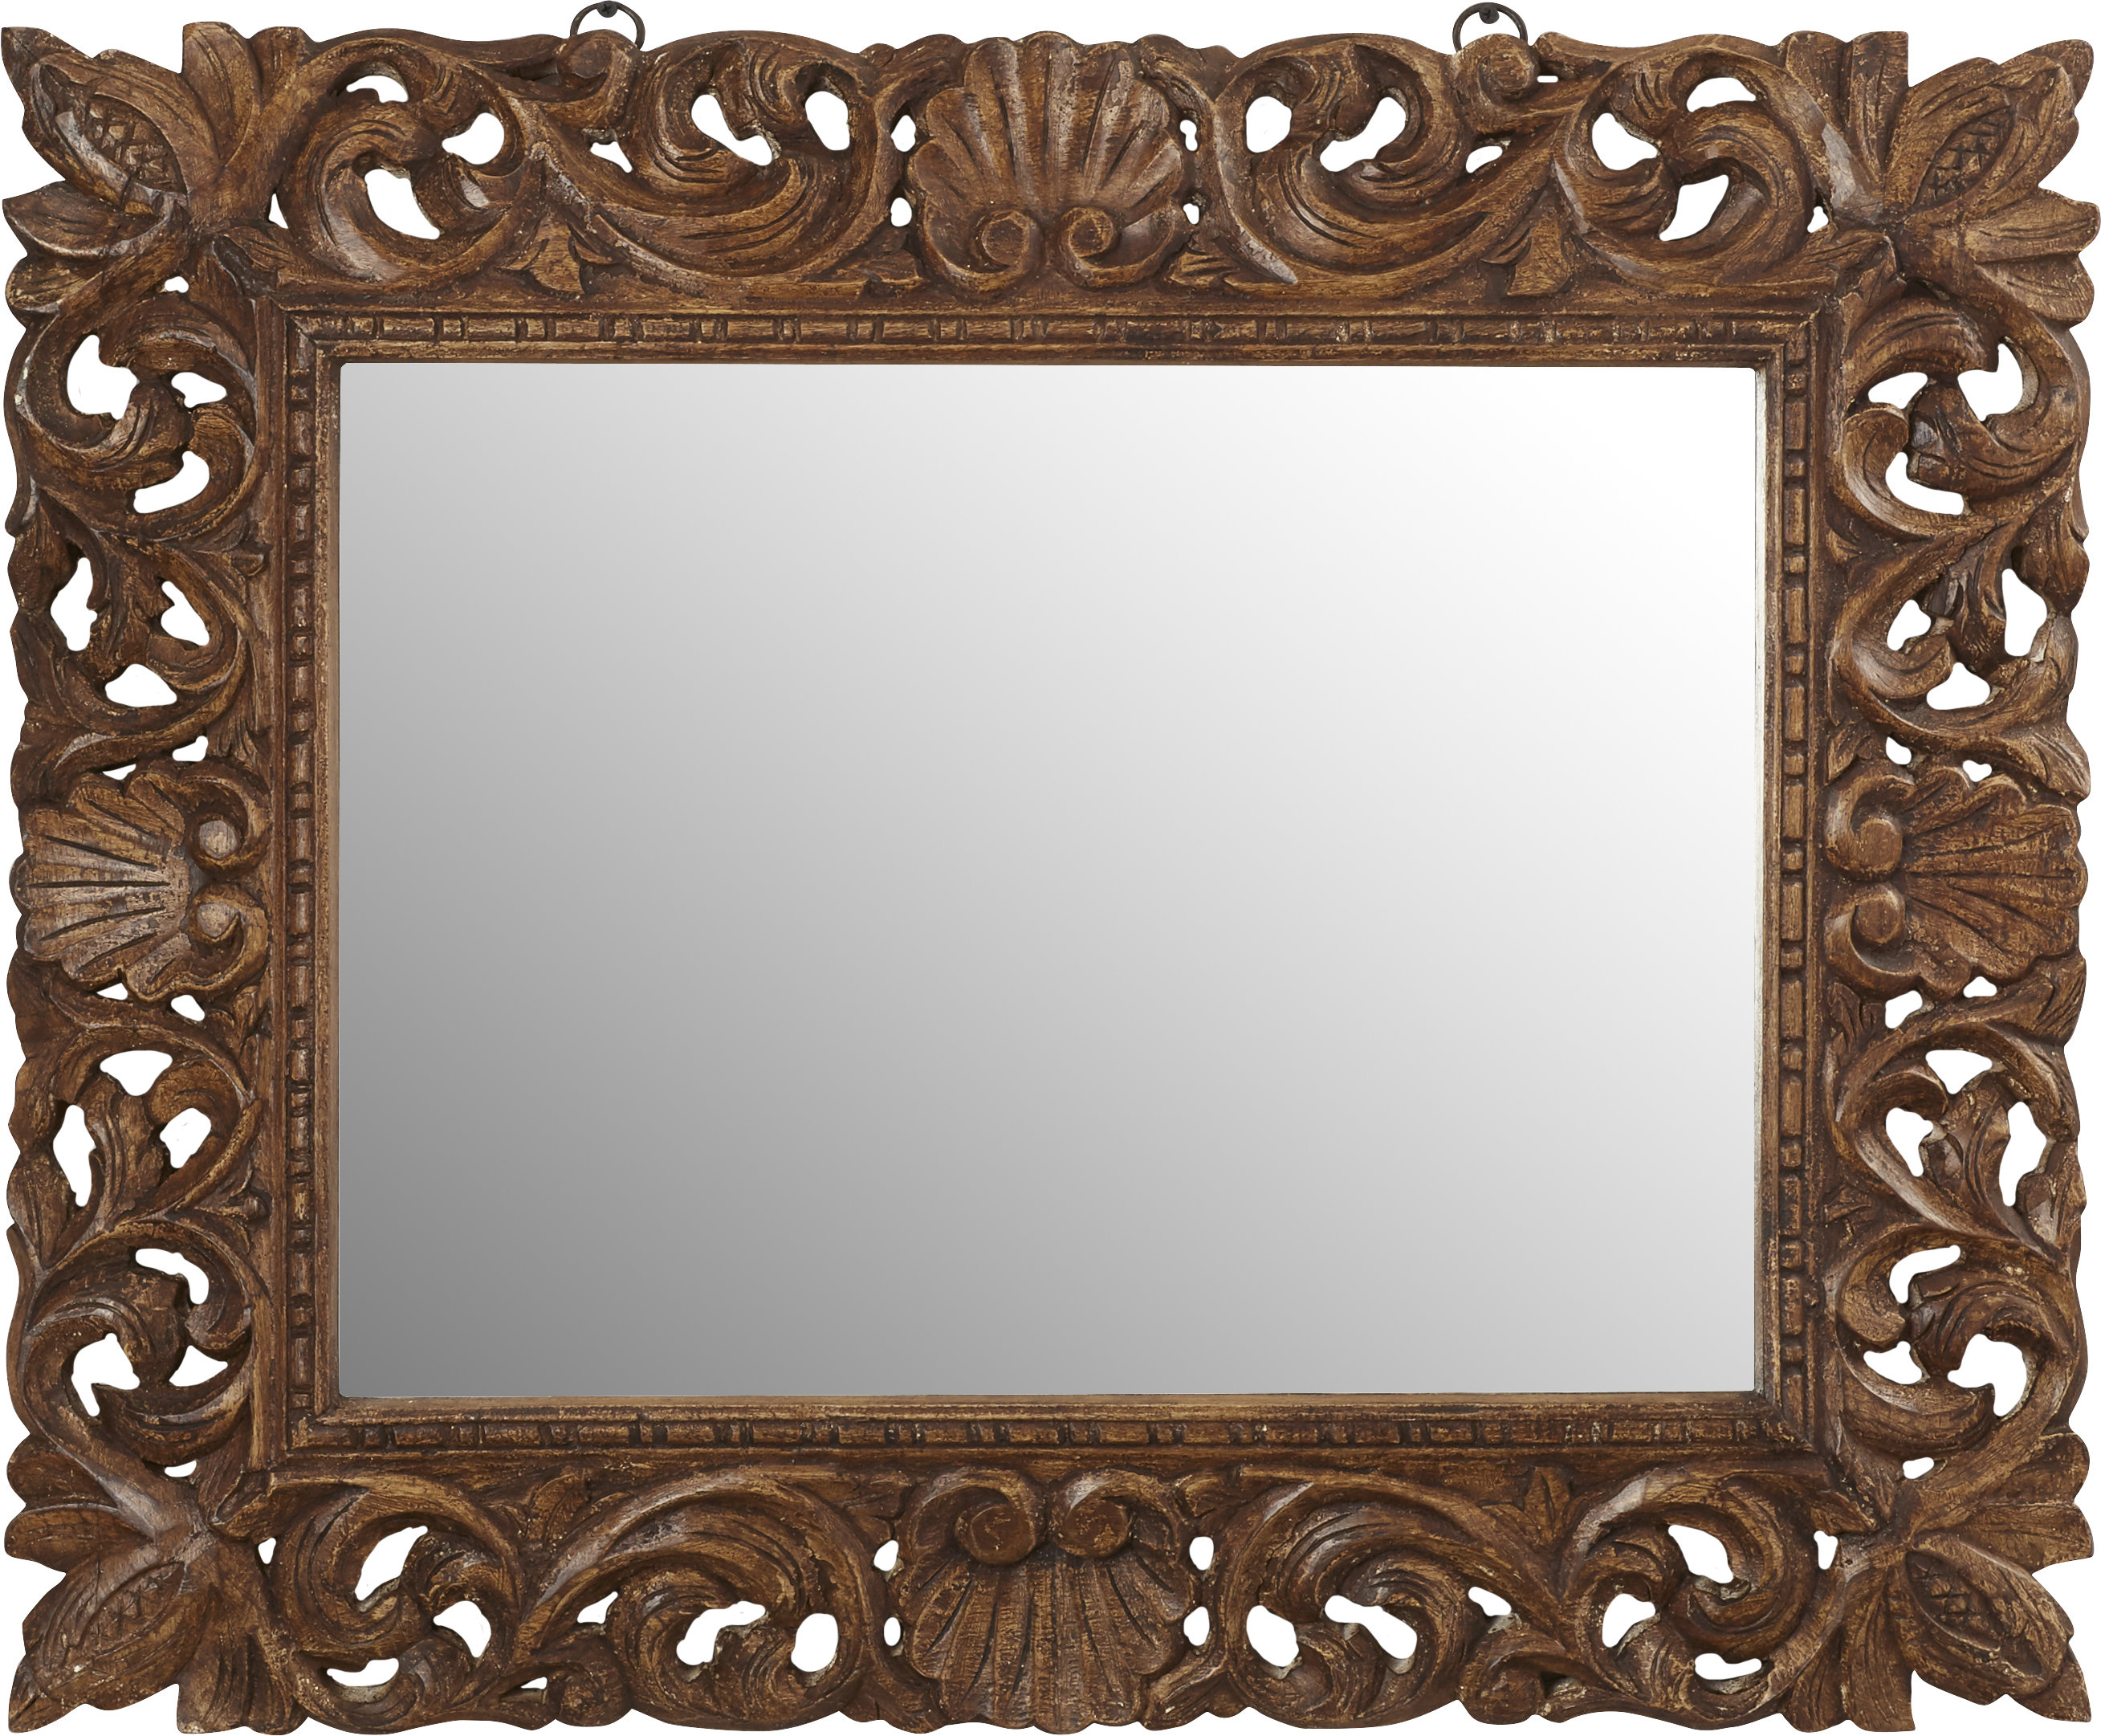 Reclaimed Wood Traditional Beveled Distressed Wall Mirror Regarding Alissa Traditional Wall Mirrors (View 4 of 20)